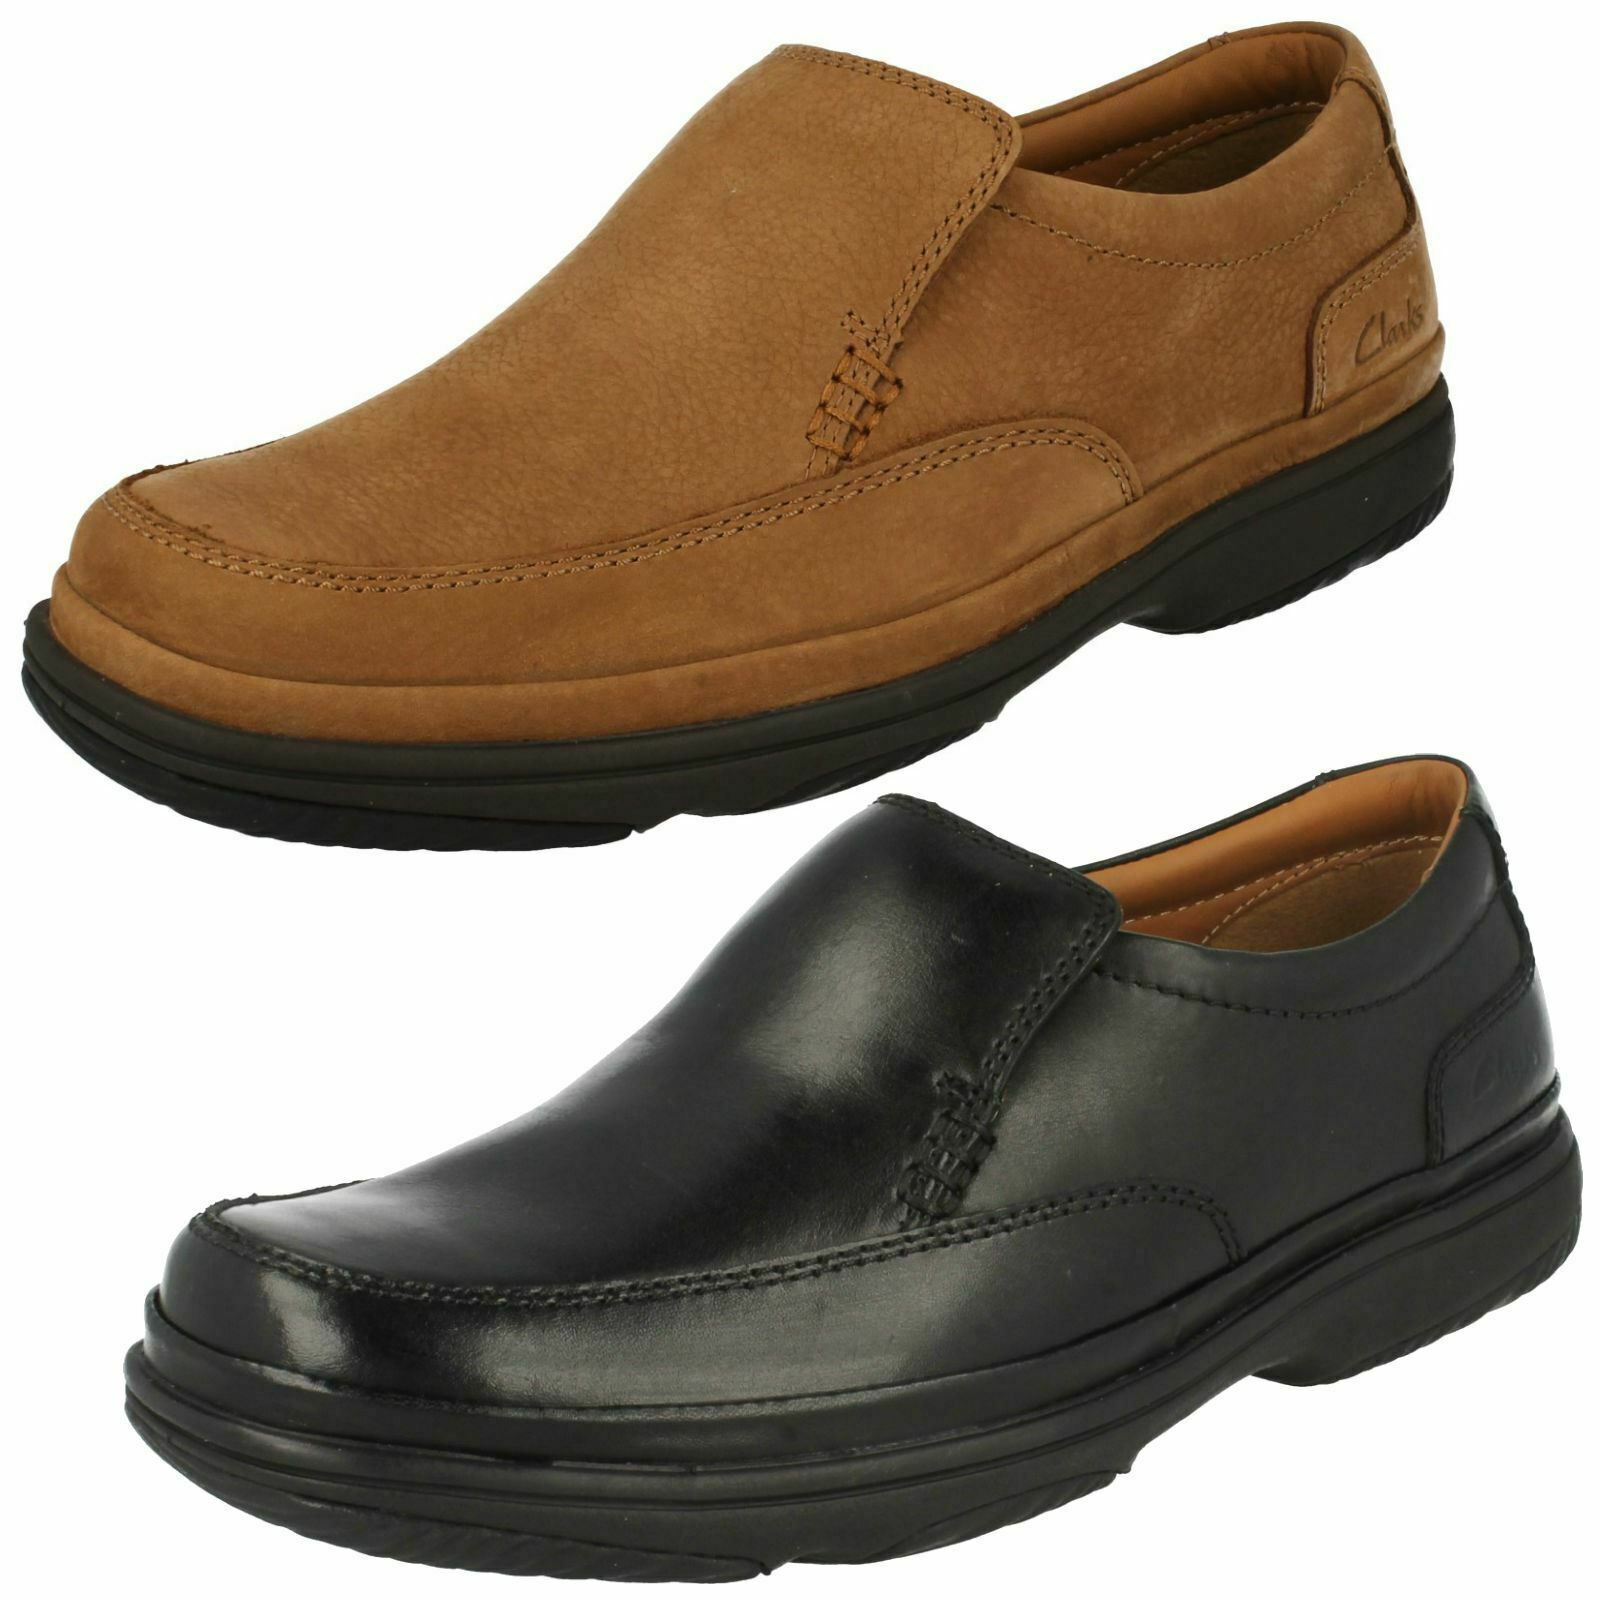 Mens Clarks Flexlight Wide Fitting Slip On shoes - Swift Step